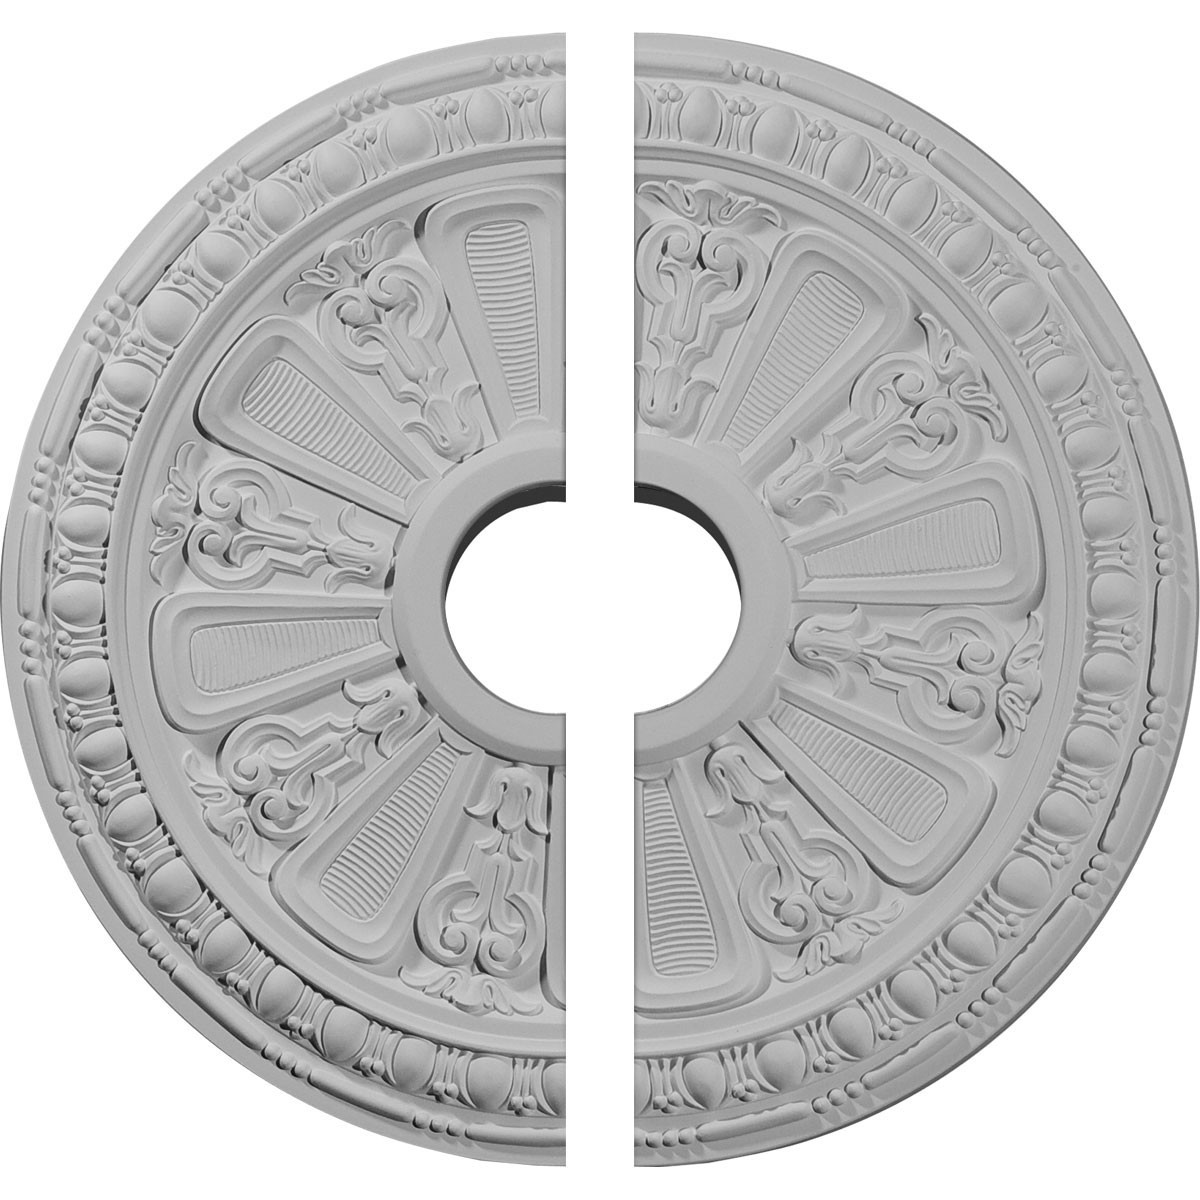 """EM-CM18RA2-03625 - 18 1/8""""OD 3 5/8""""ID x 1 1/8""""P Raymond Ceiling Medallion, Two Piece (Fits Canopies up to 5 1/8"""")"""